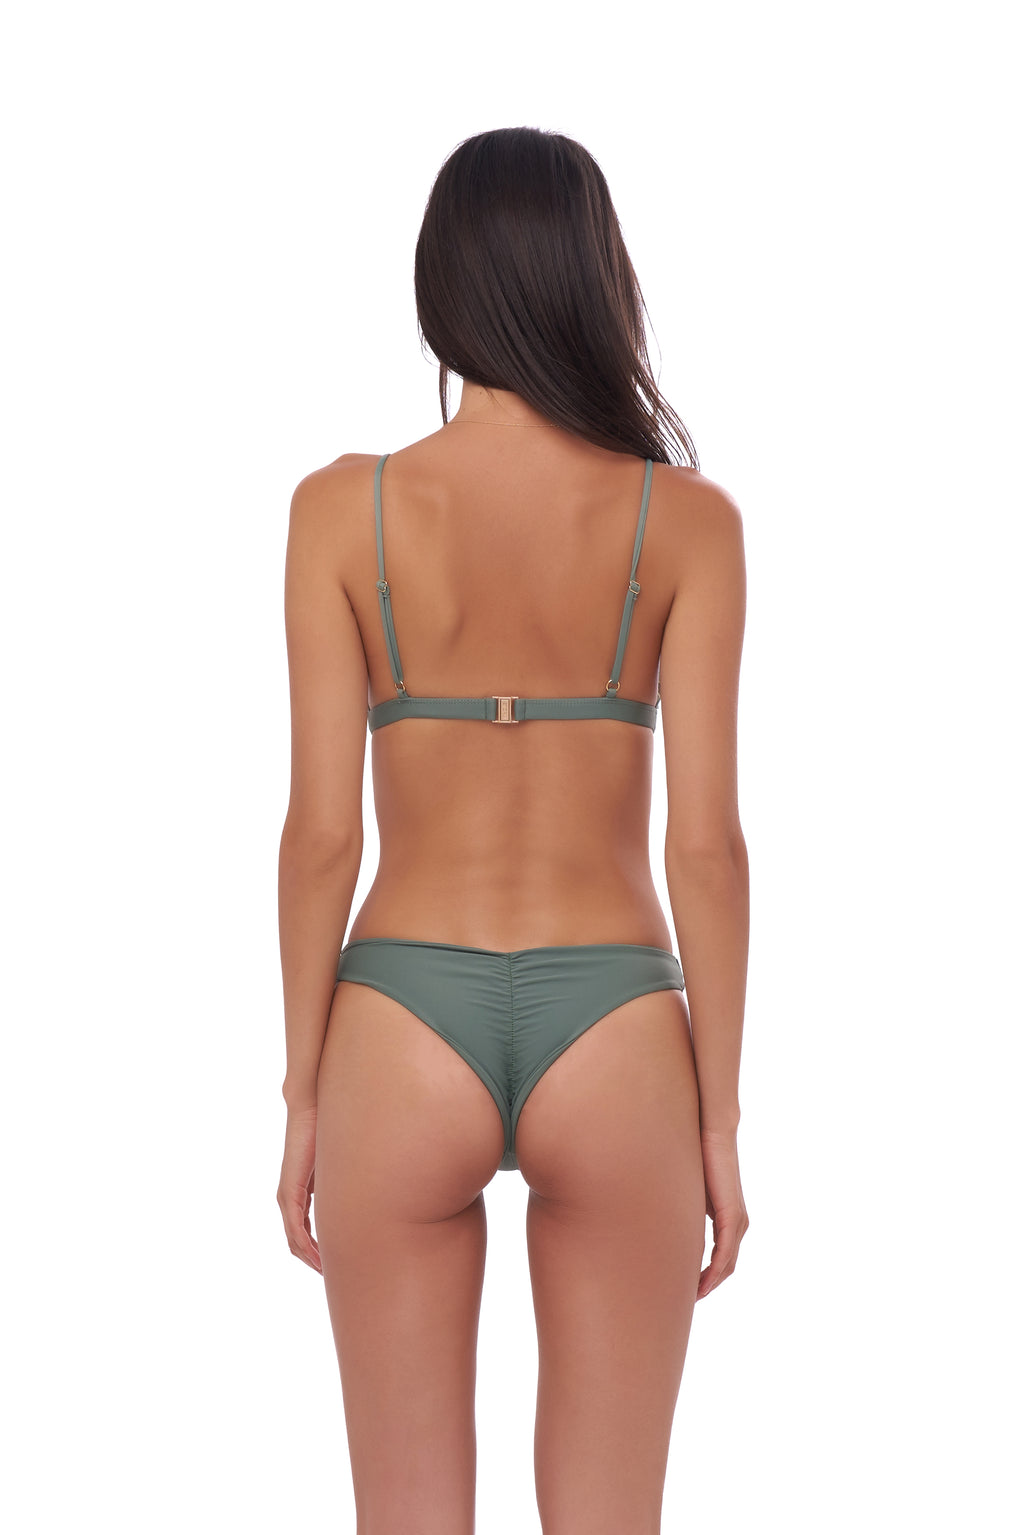 Storm Swimwear - Aruba - Centre Back Ruche Bikini Bottom in Eucalyptus